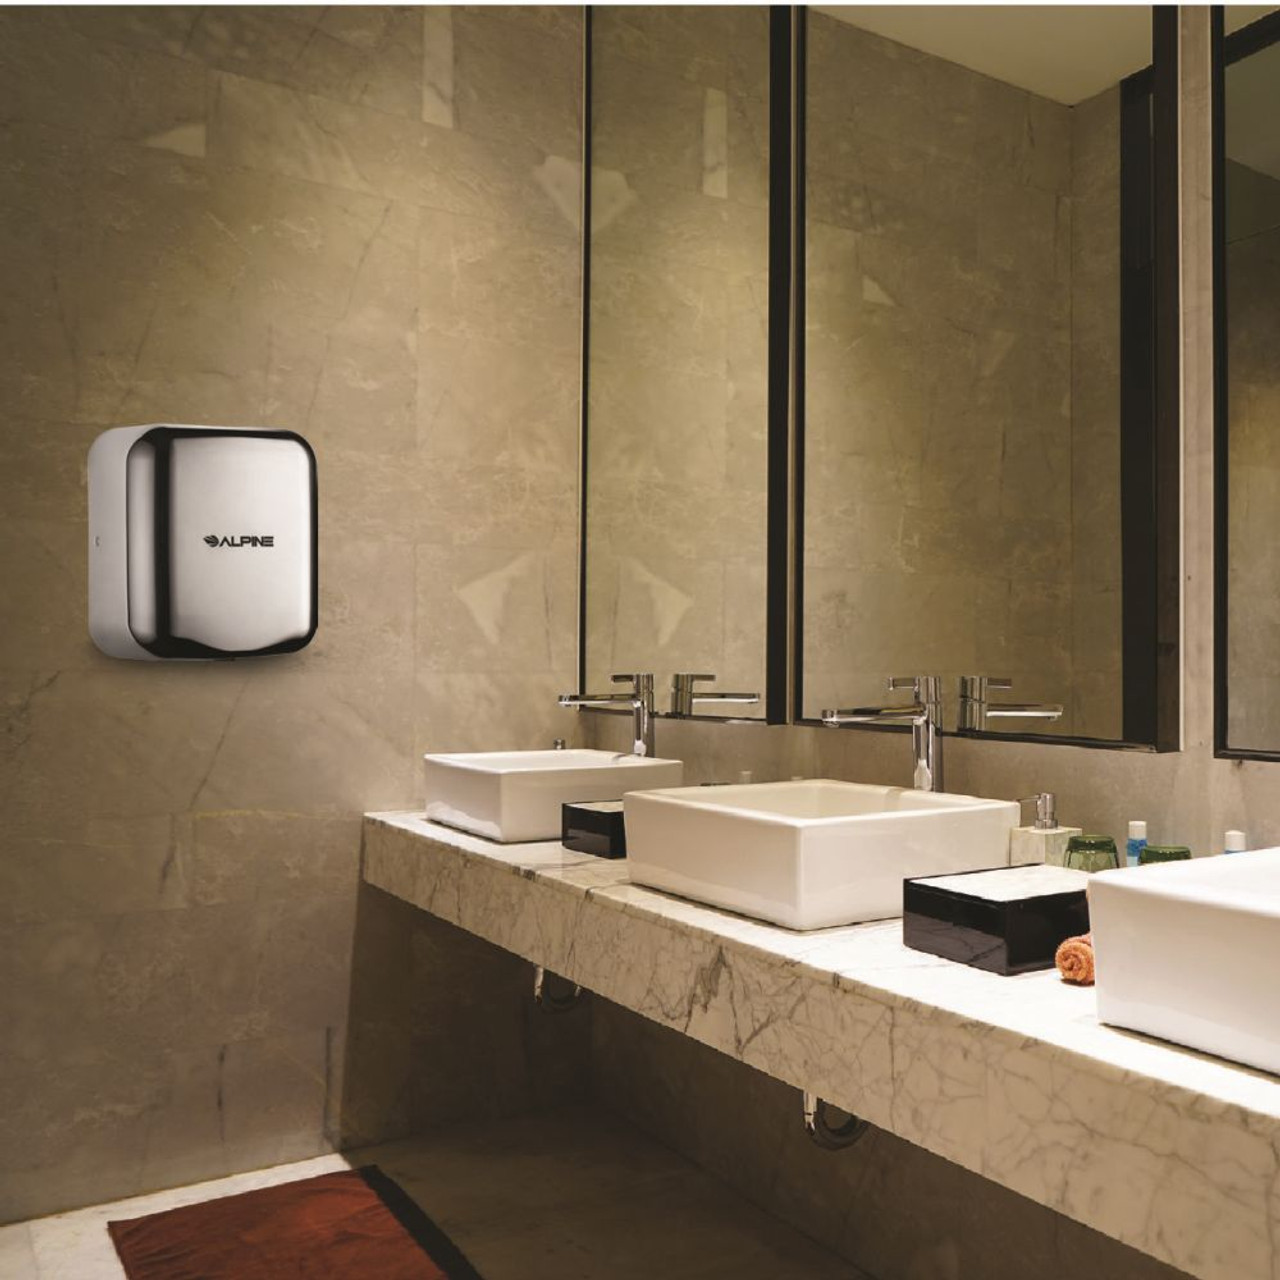 The Hemlock Hand Dryer comes in Chrome version.